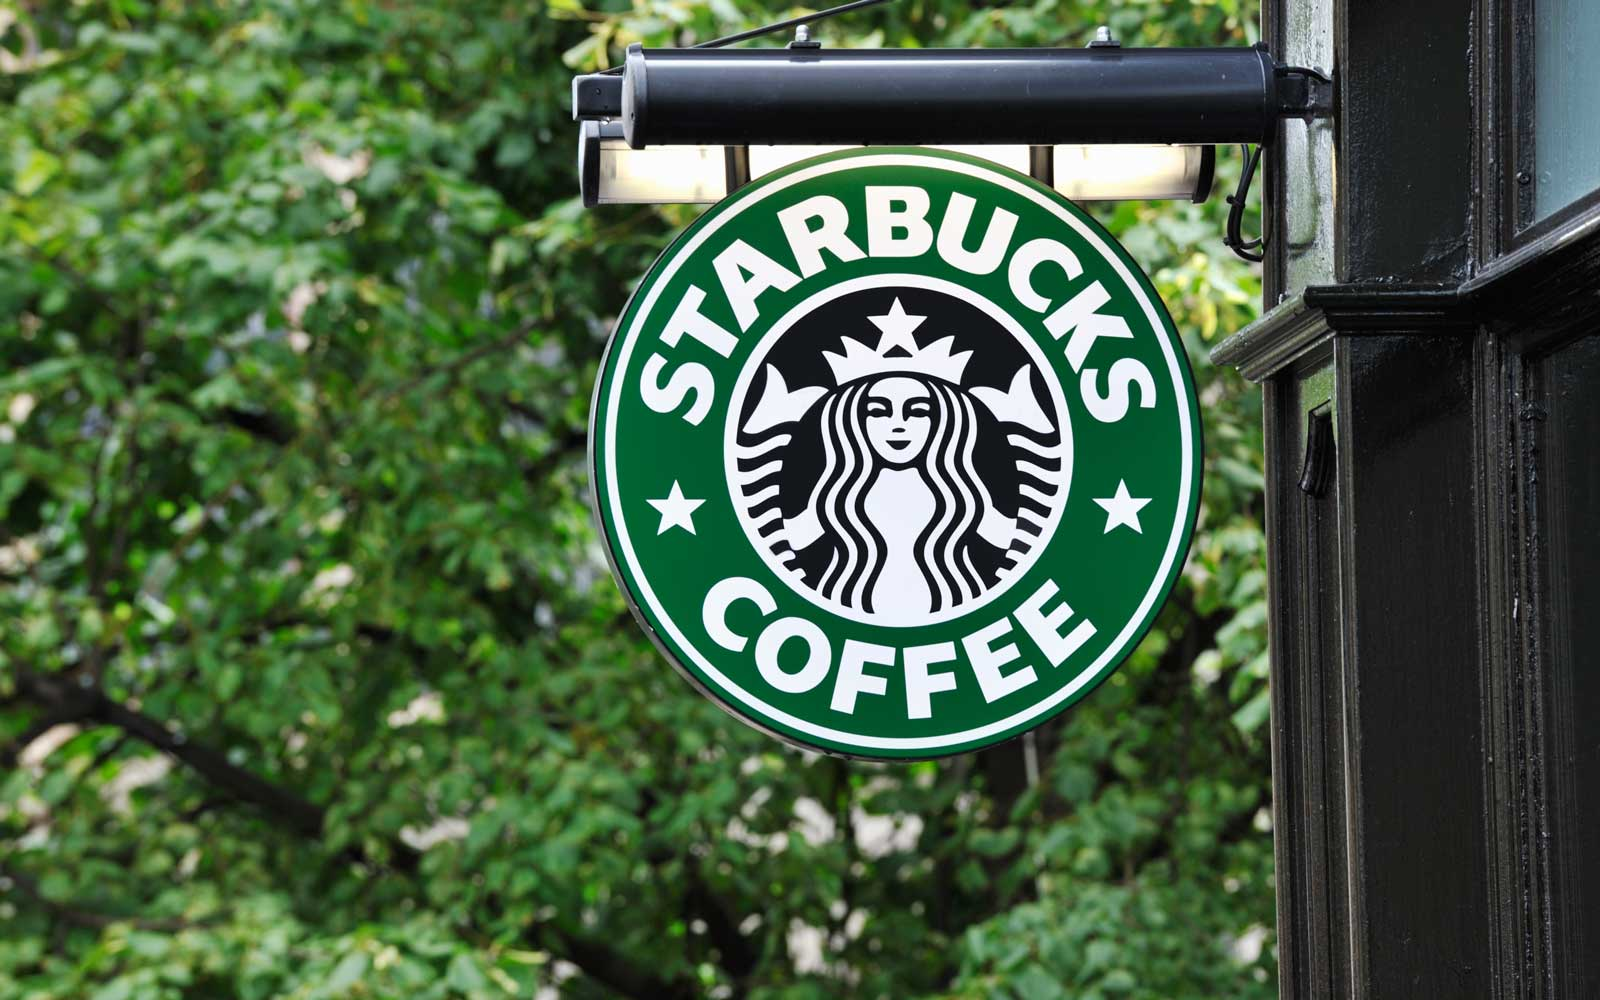 Starbucks Just Changed Its Policy About Who Can Use Its Bathrooms